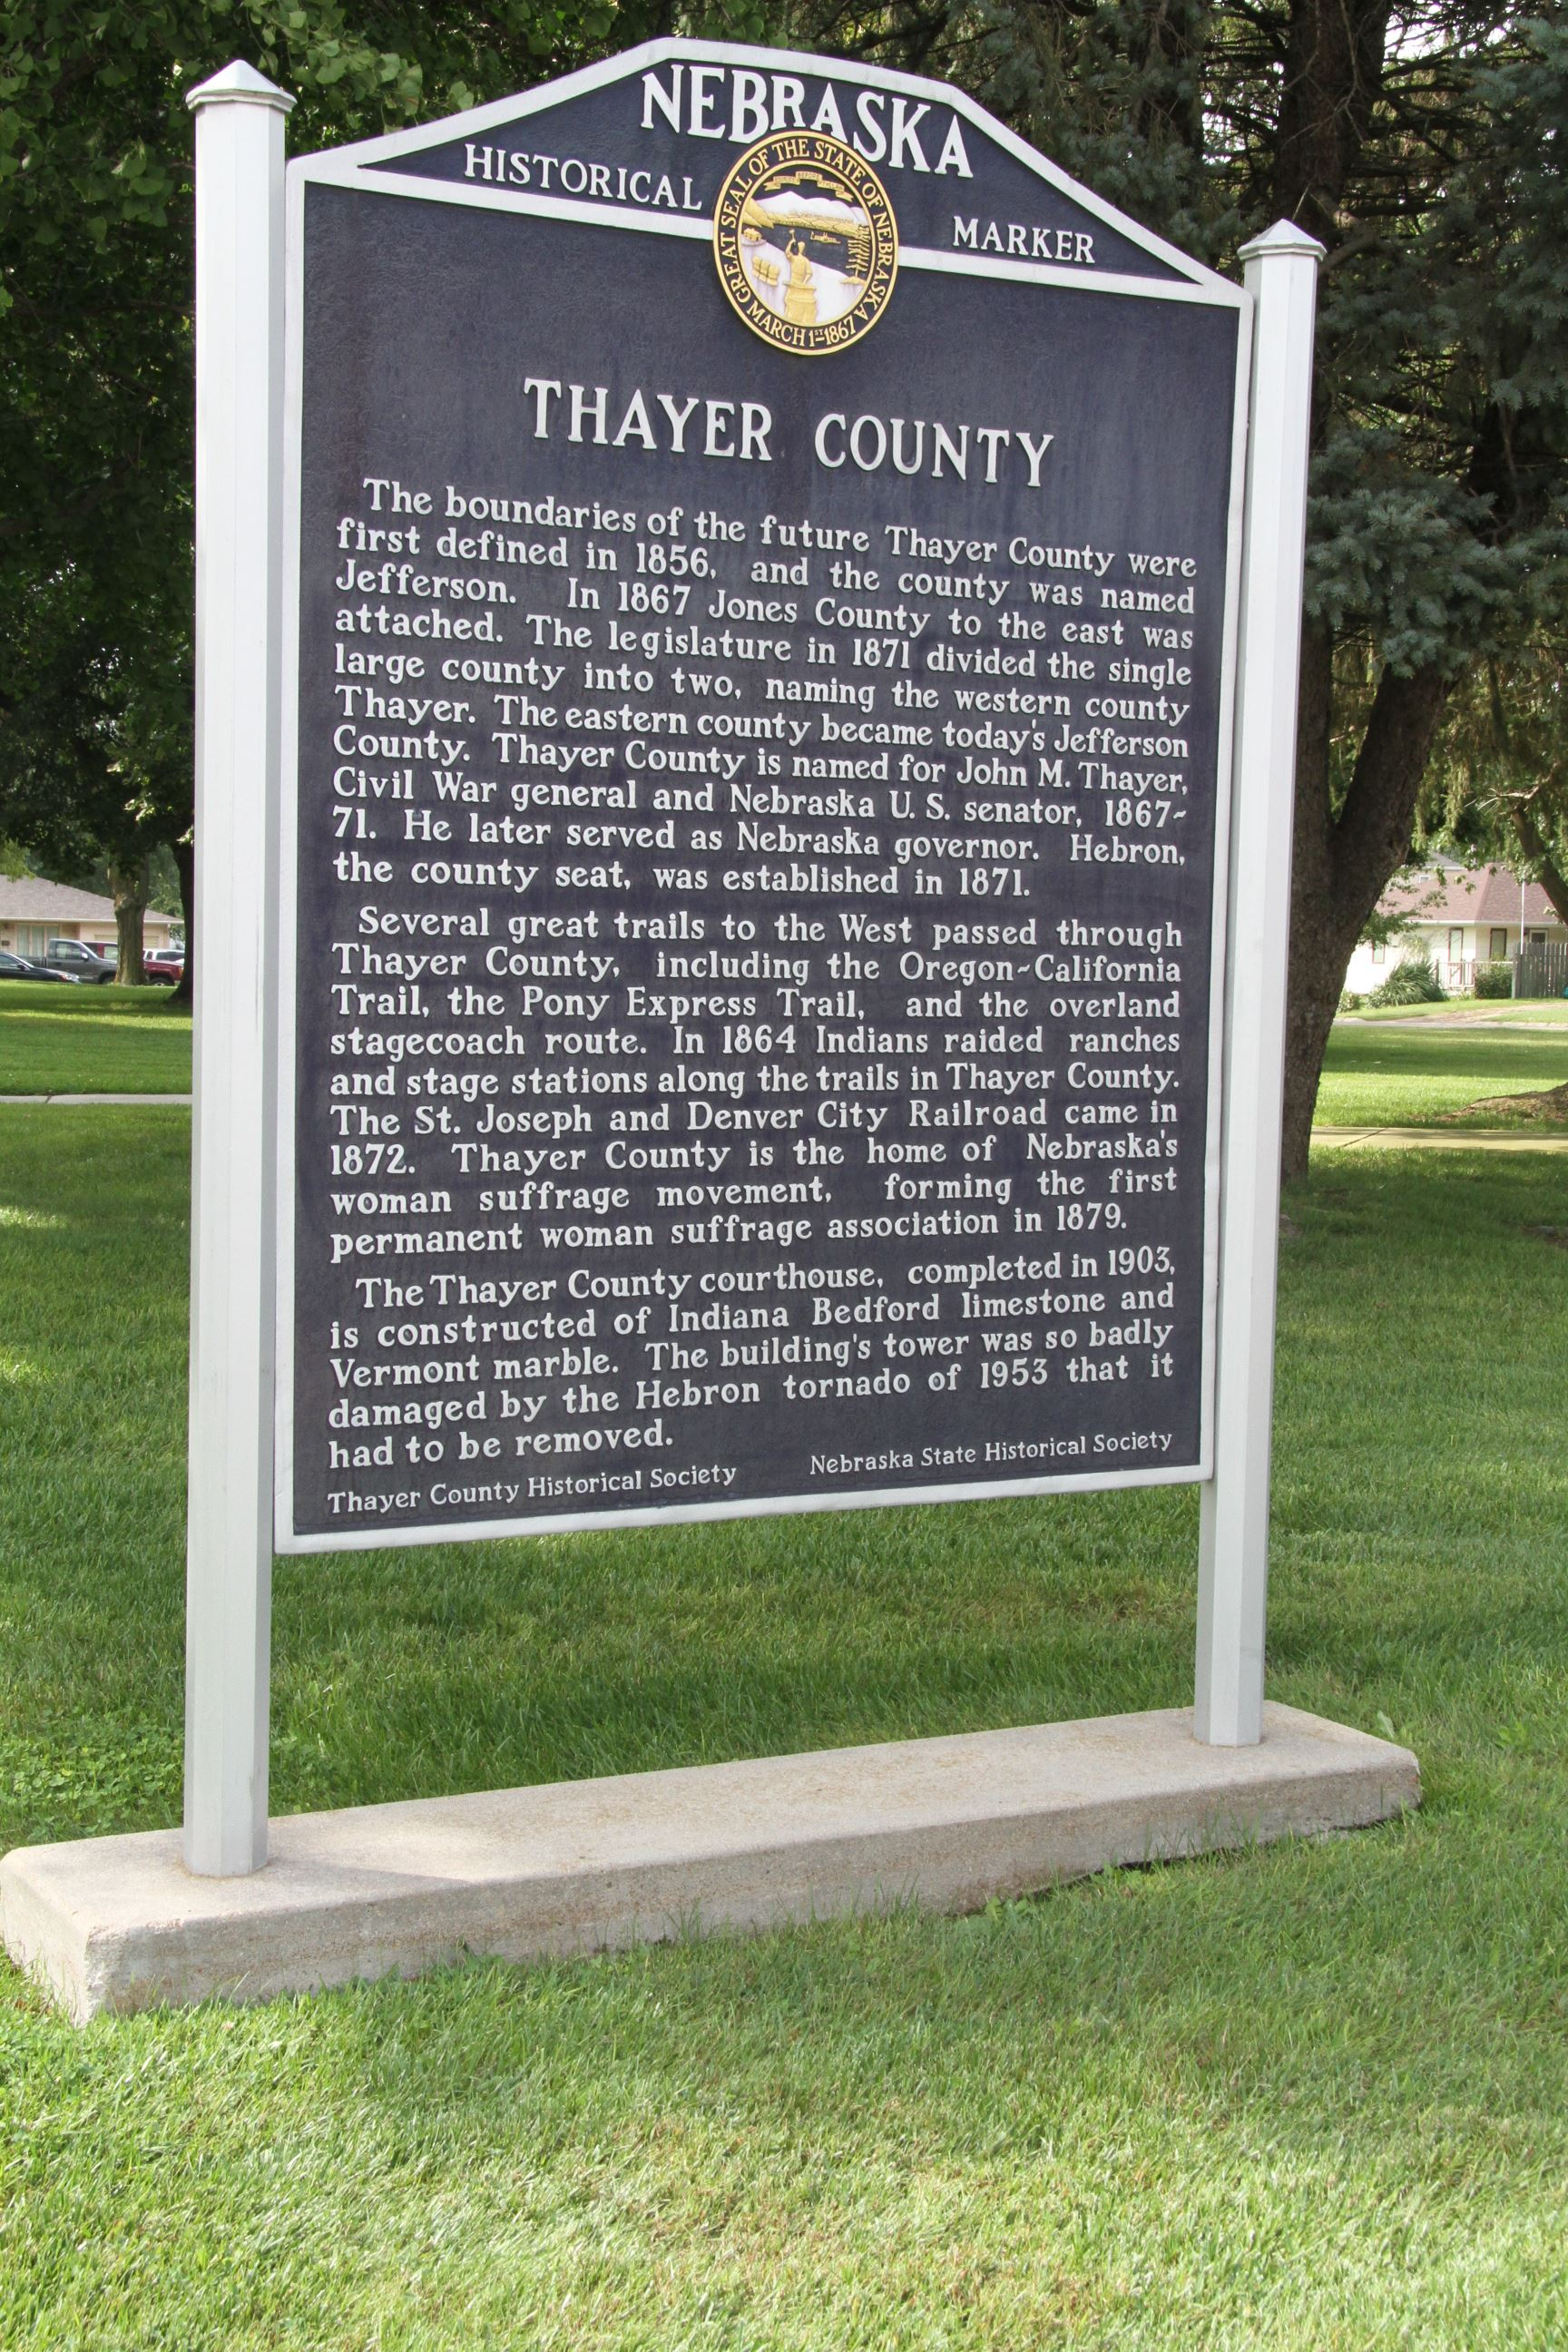 Thayer County History on Sign